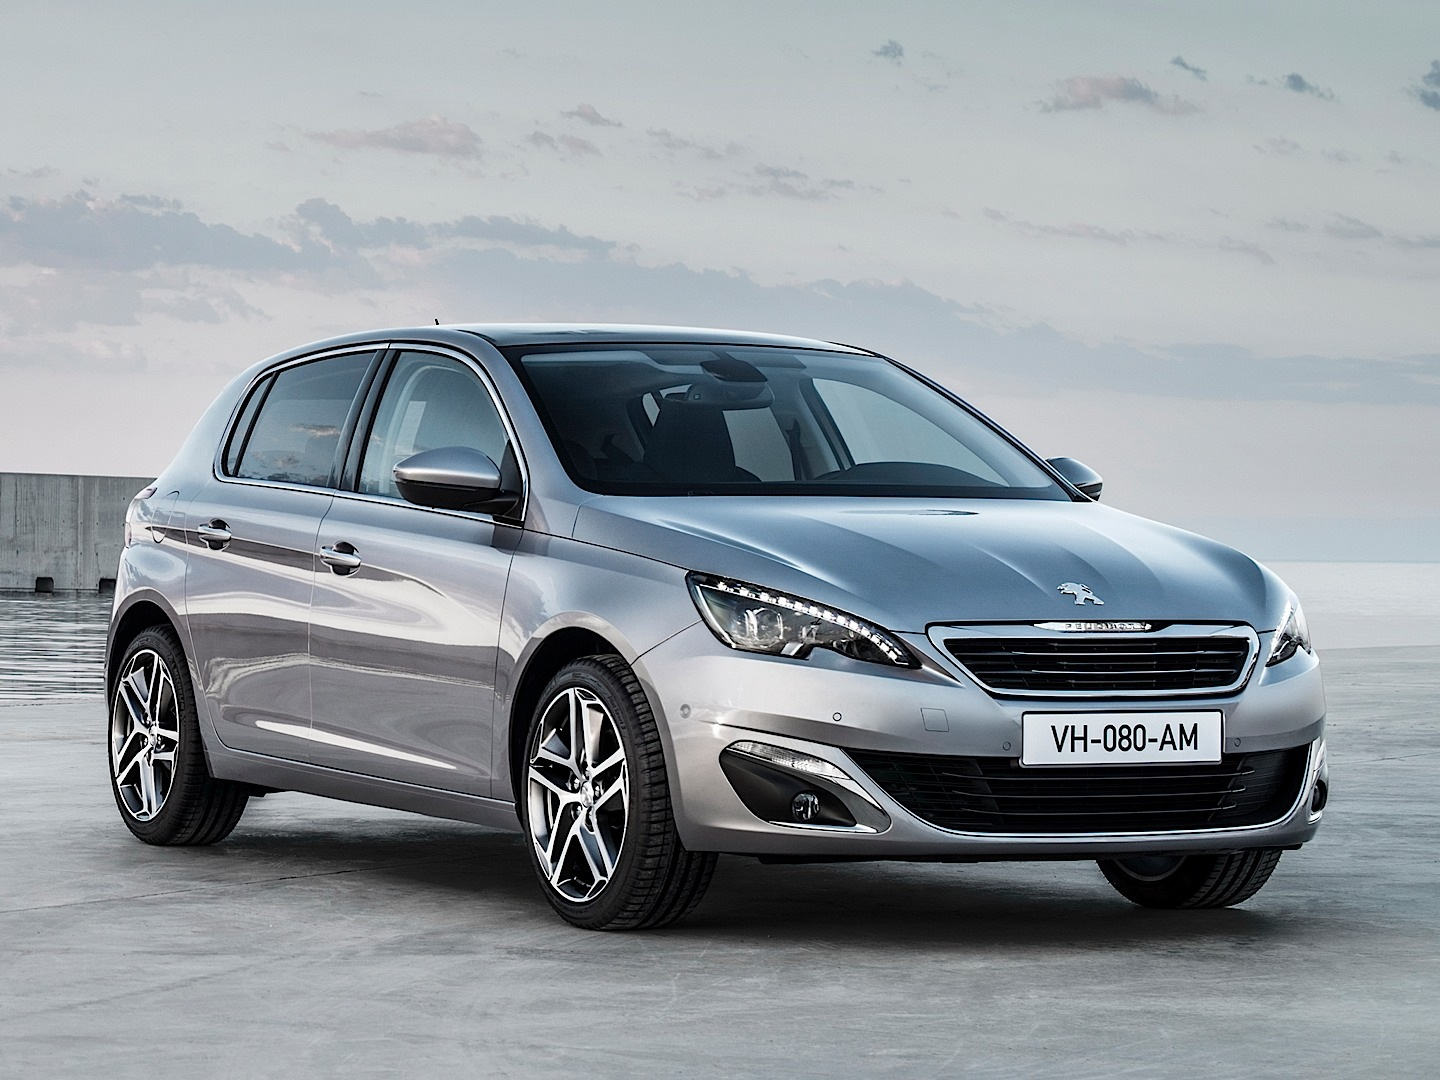 Fresh 2014 Peugeot 308 Photos Leaked Shed New Light On